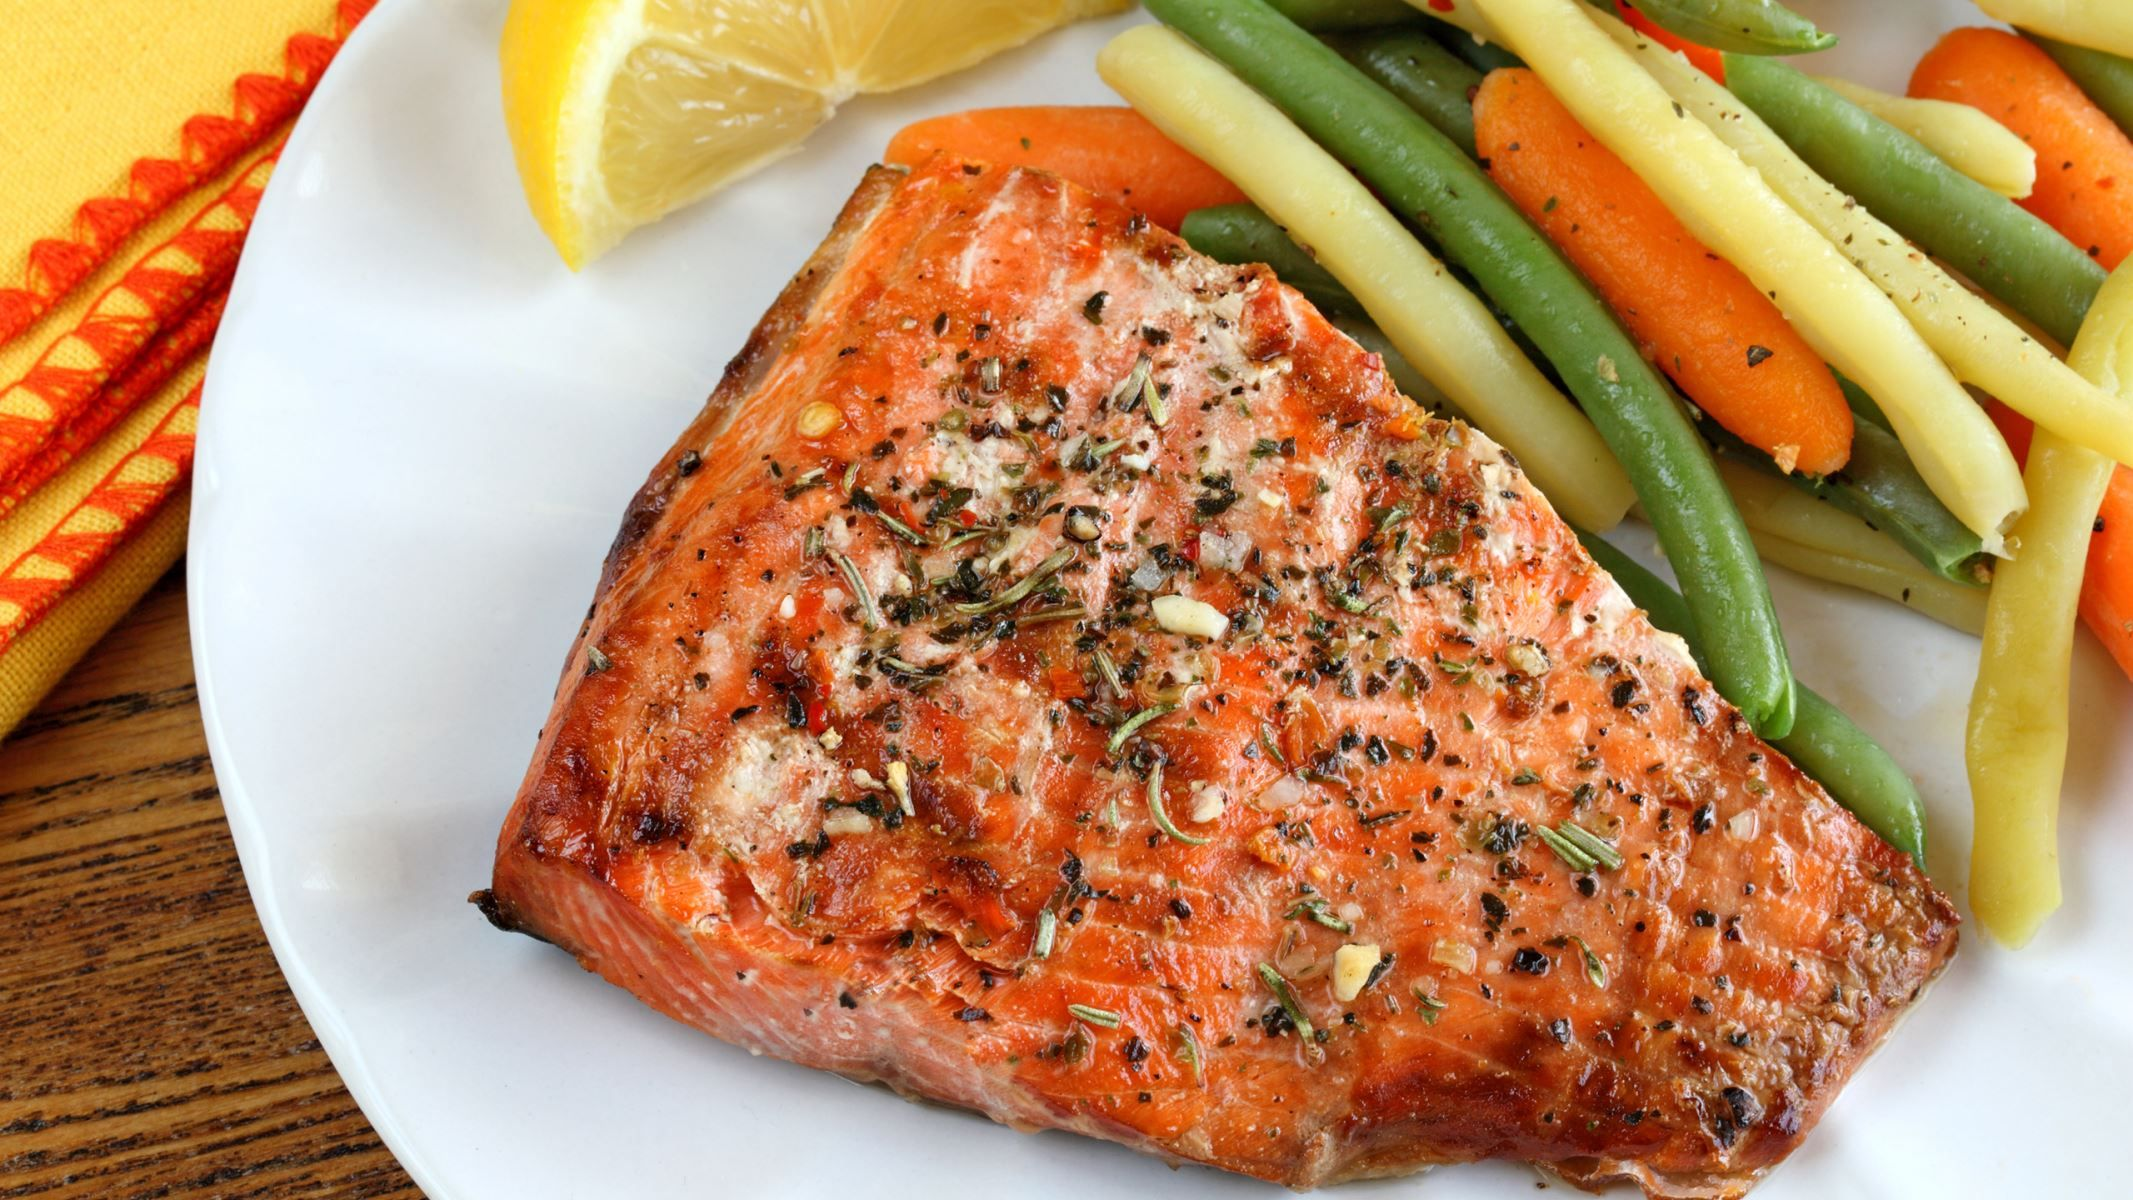 Image result for Salmon and Other Lean Proteins